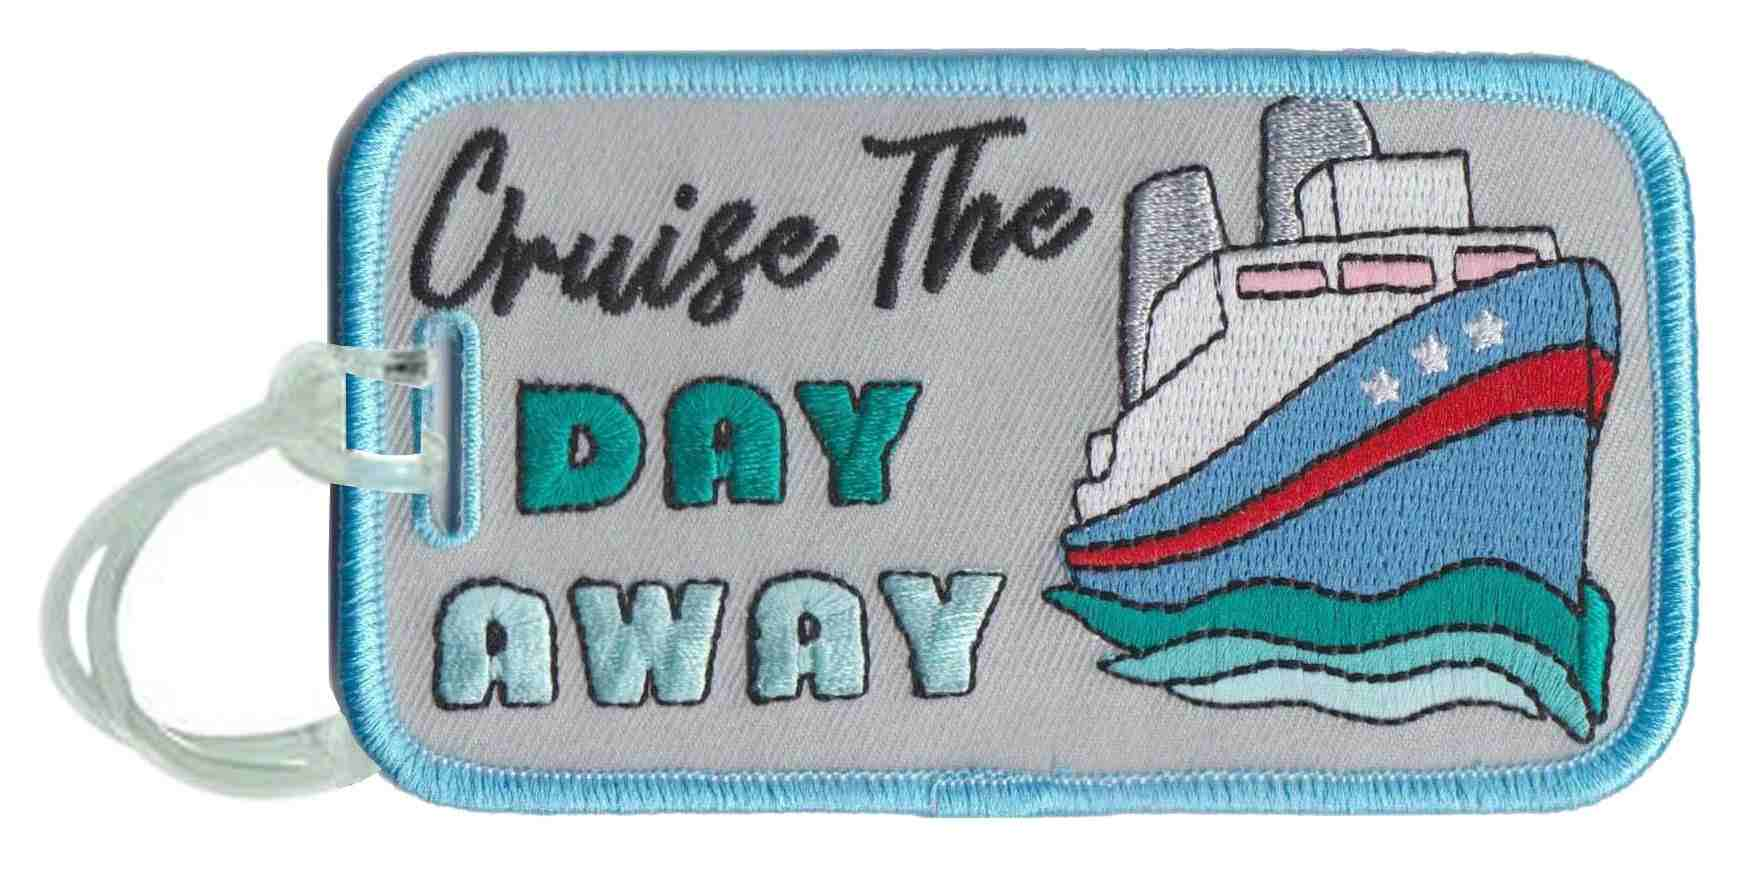 Cruise the Day Away Wholesale Luggage Tags